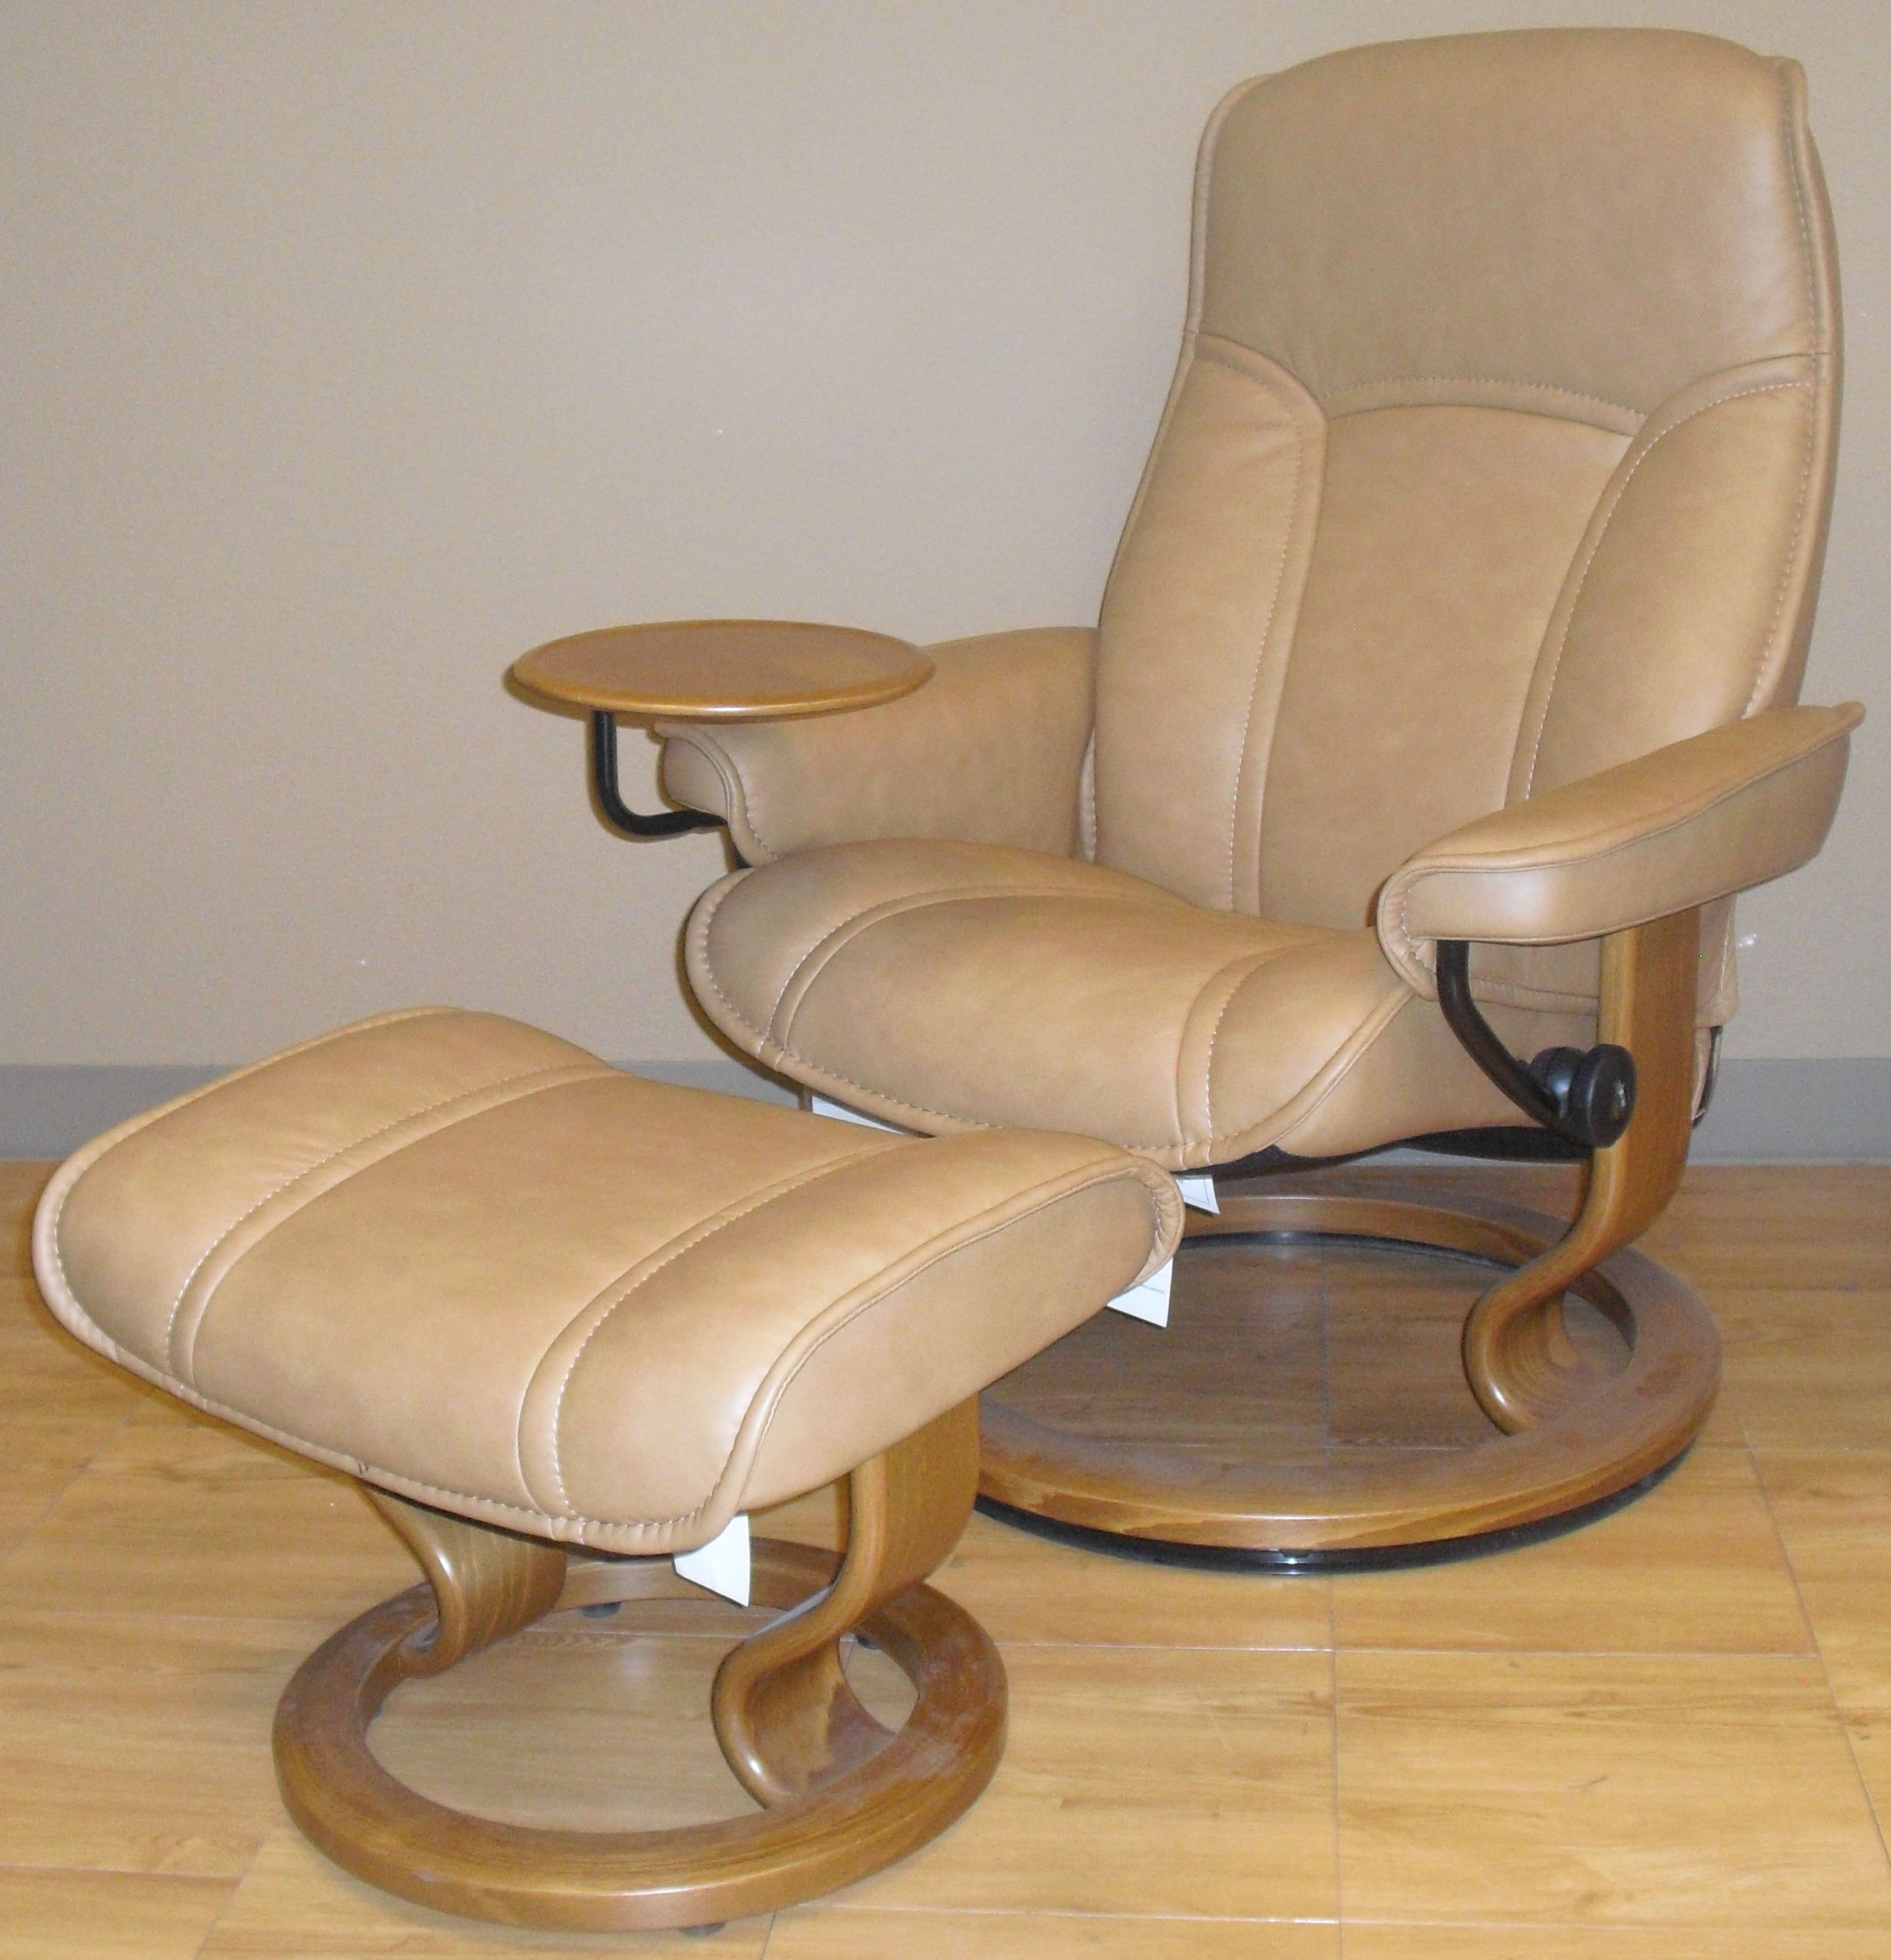 chairs is club a recliner slipcover what yardage recliners chair paris leather